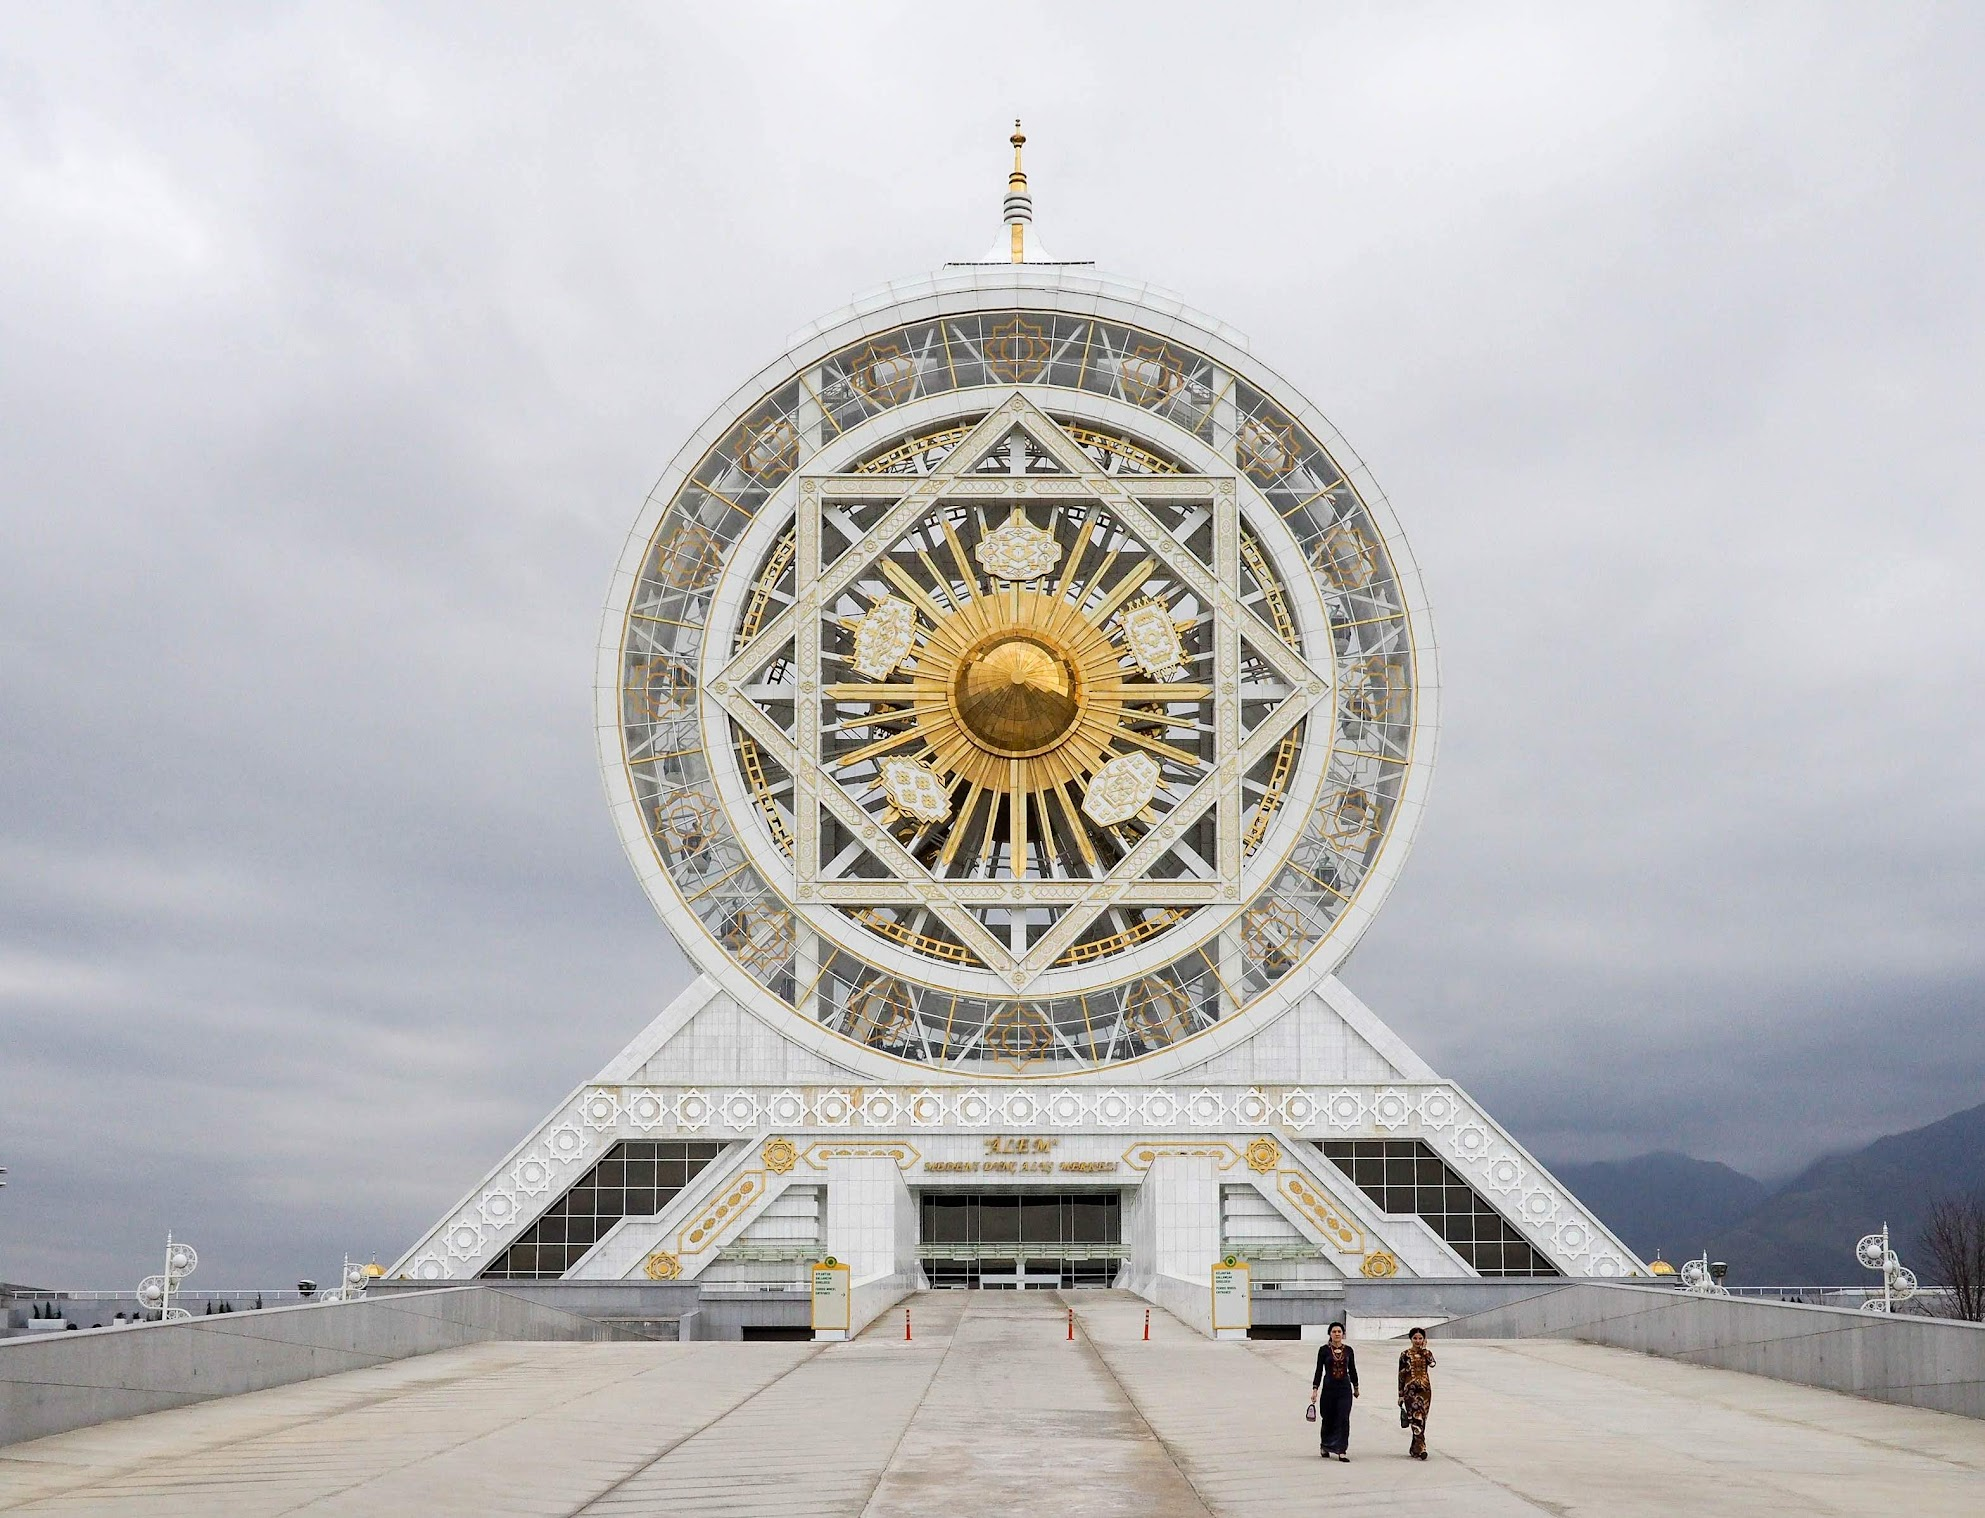 Turkmenistan Fact: World's largest indoor ferris wheel is in Ashgabat Turkmenistan